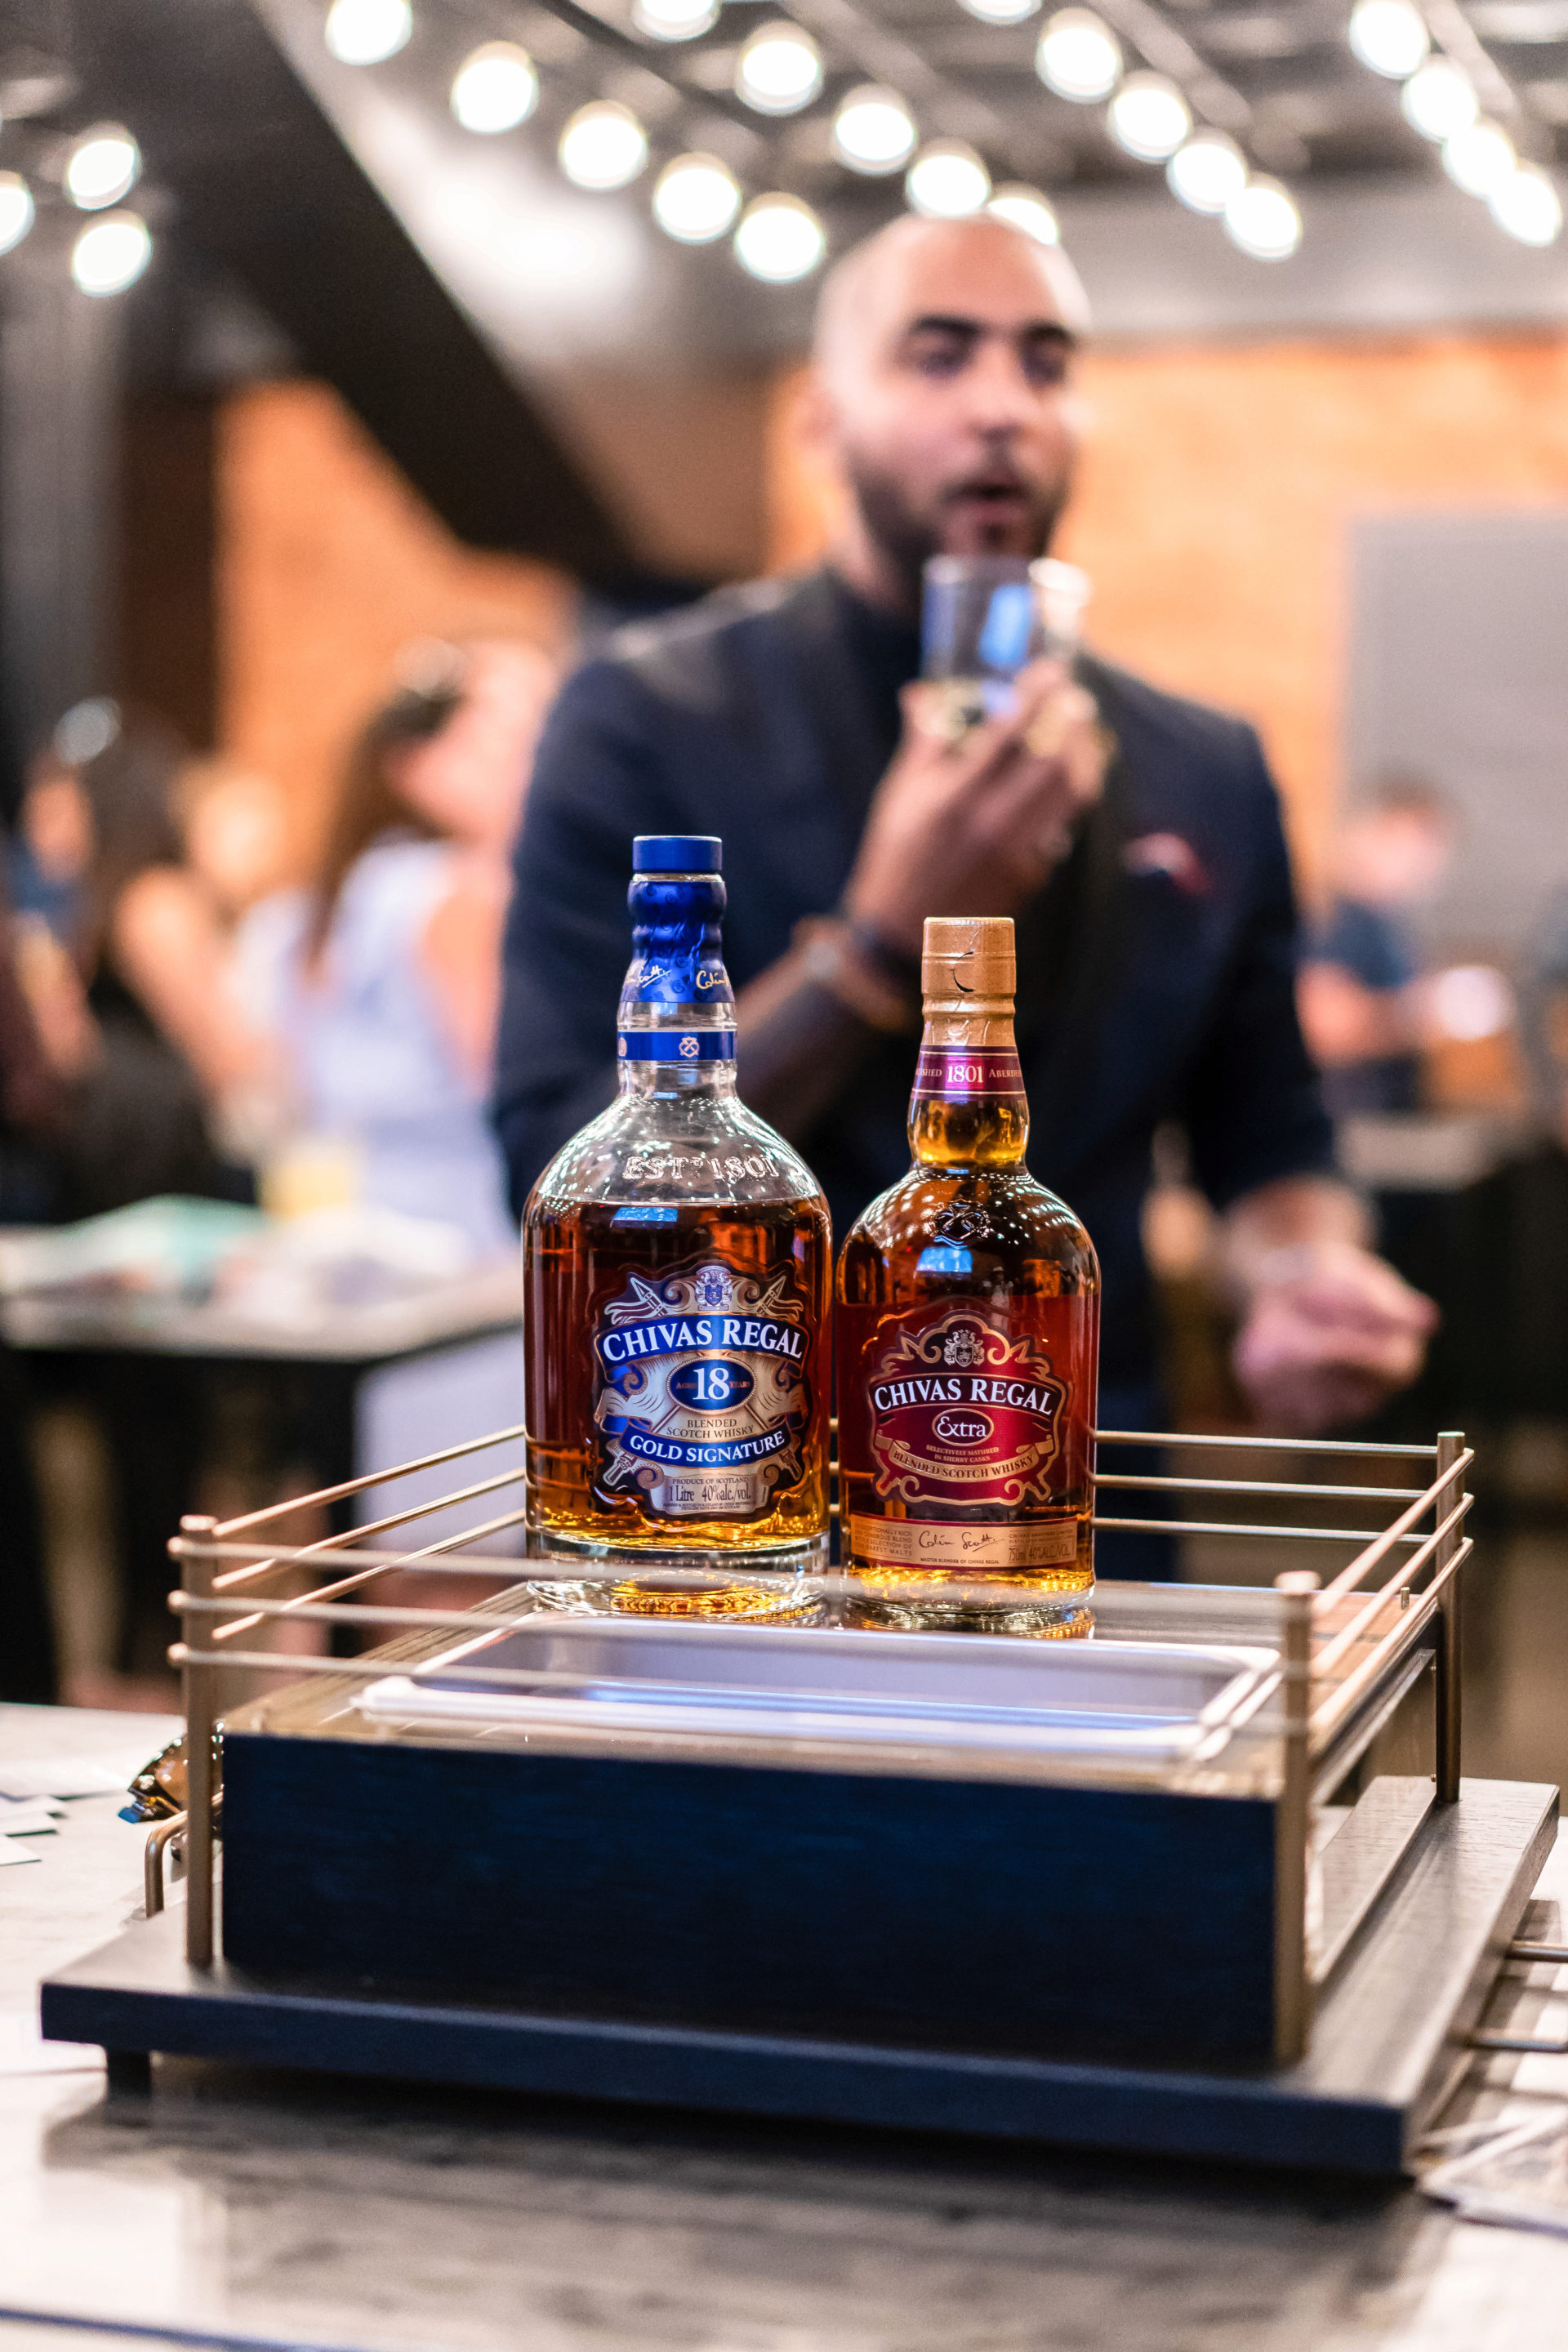 OHM_IMG_Chivas_Day2_Top_Selects-05093.jpg